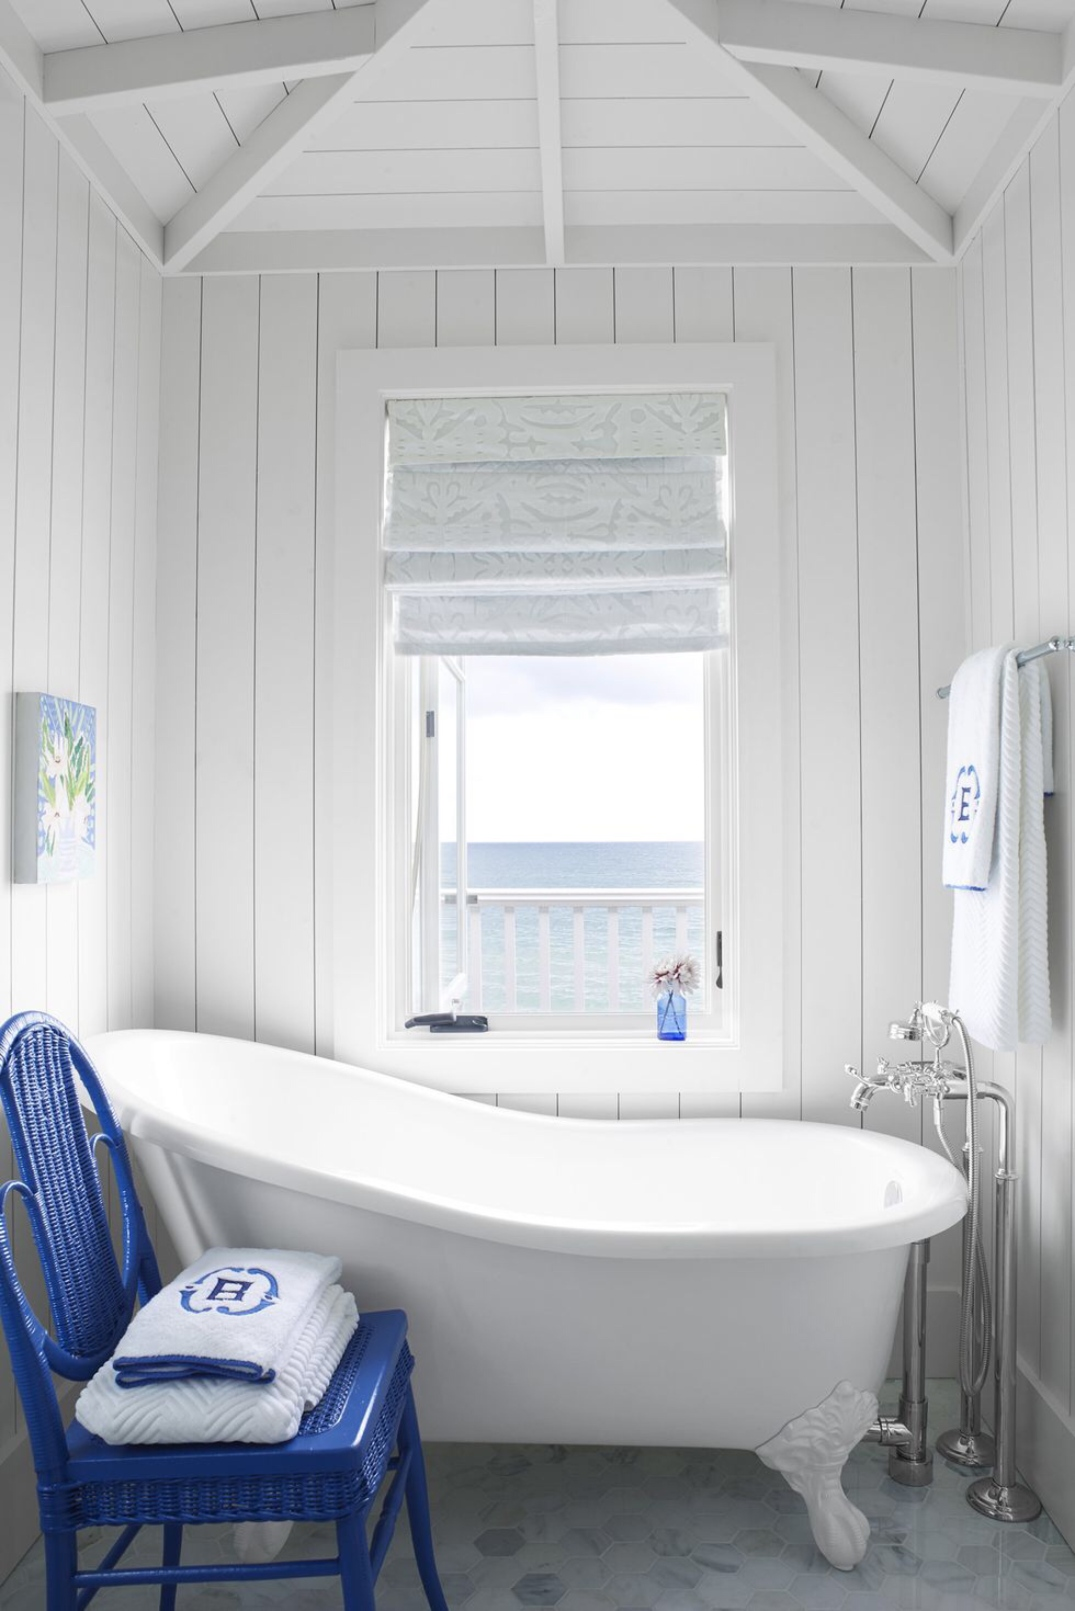 Bathtub_bathroom_blue_and_white_vintage_Article_from_House_Beautiful_summer_home_in_Ludington_Michigan_decor_decoration_blue_white_beach_decor_interiors_and_more_vacations_980_1469.jpg